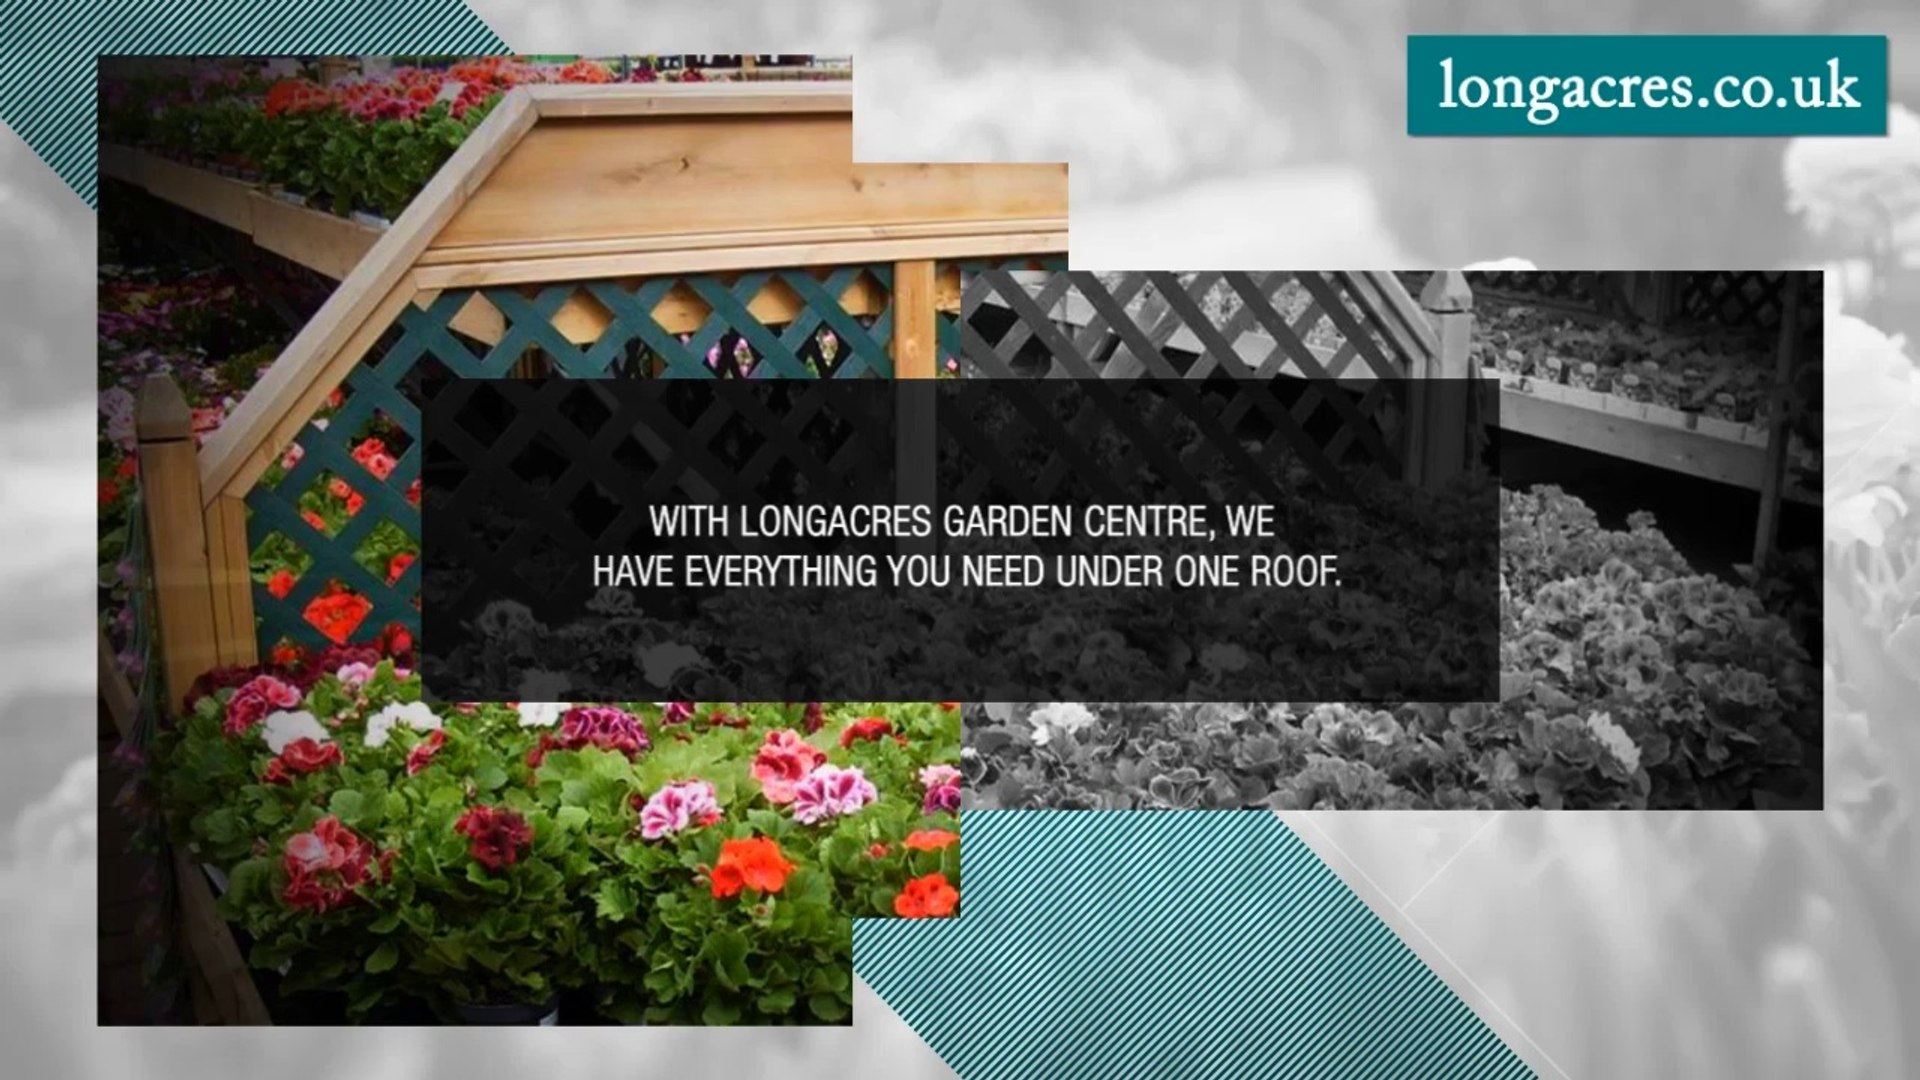 Build and Maintain a Beautiful Garden with Longacres Garden Centre